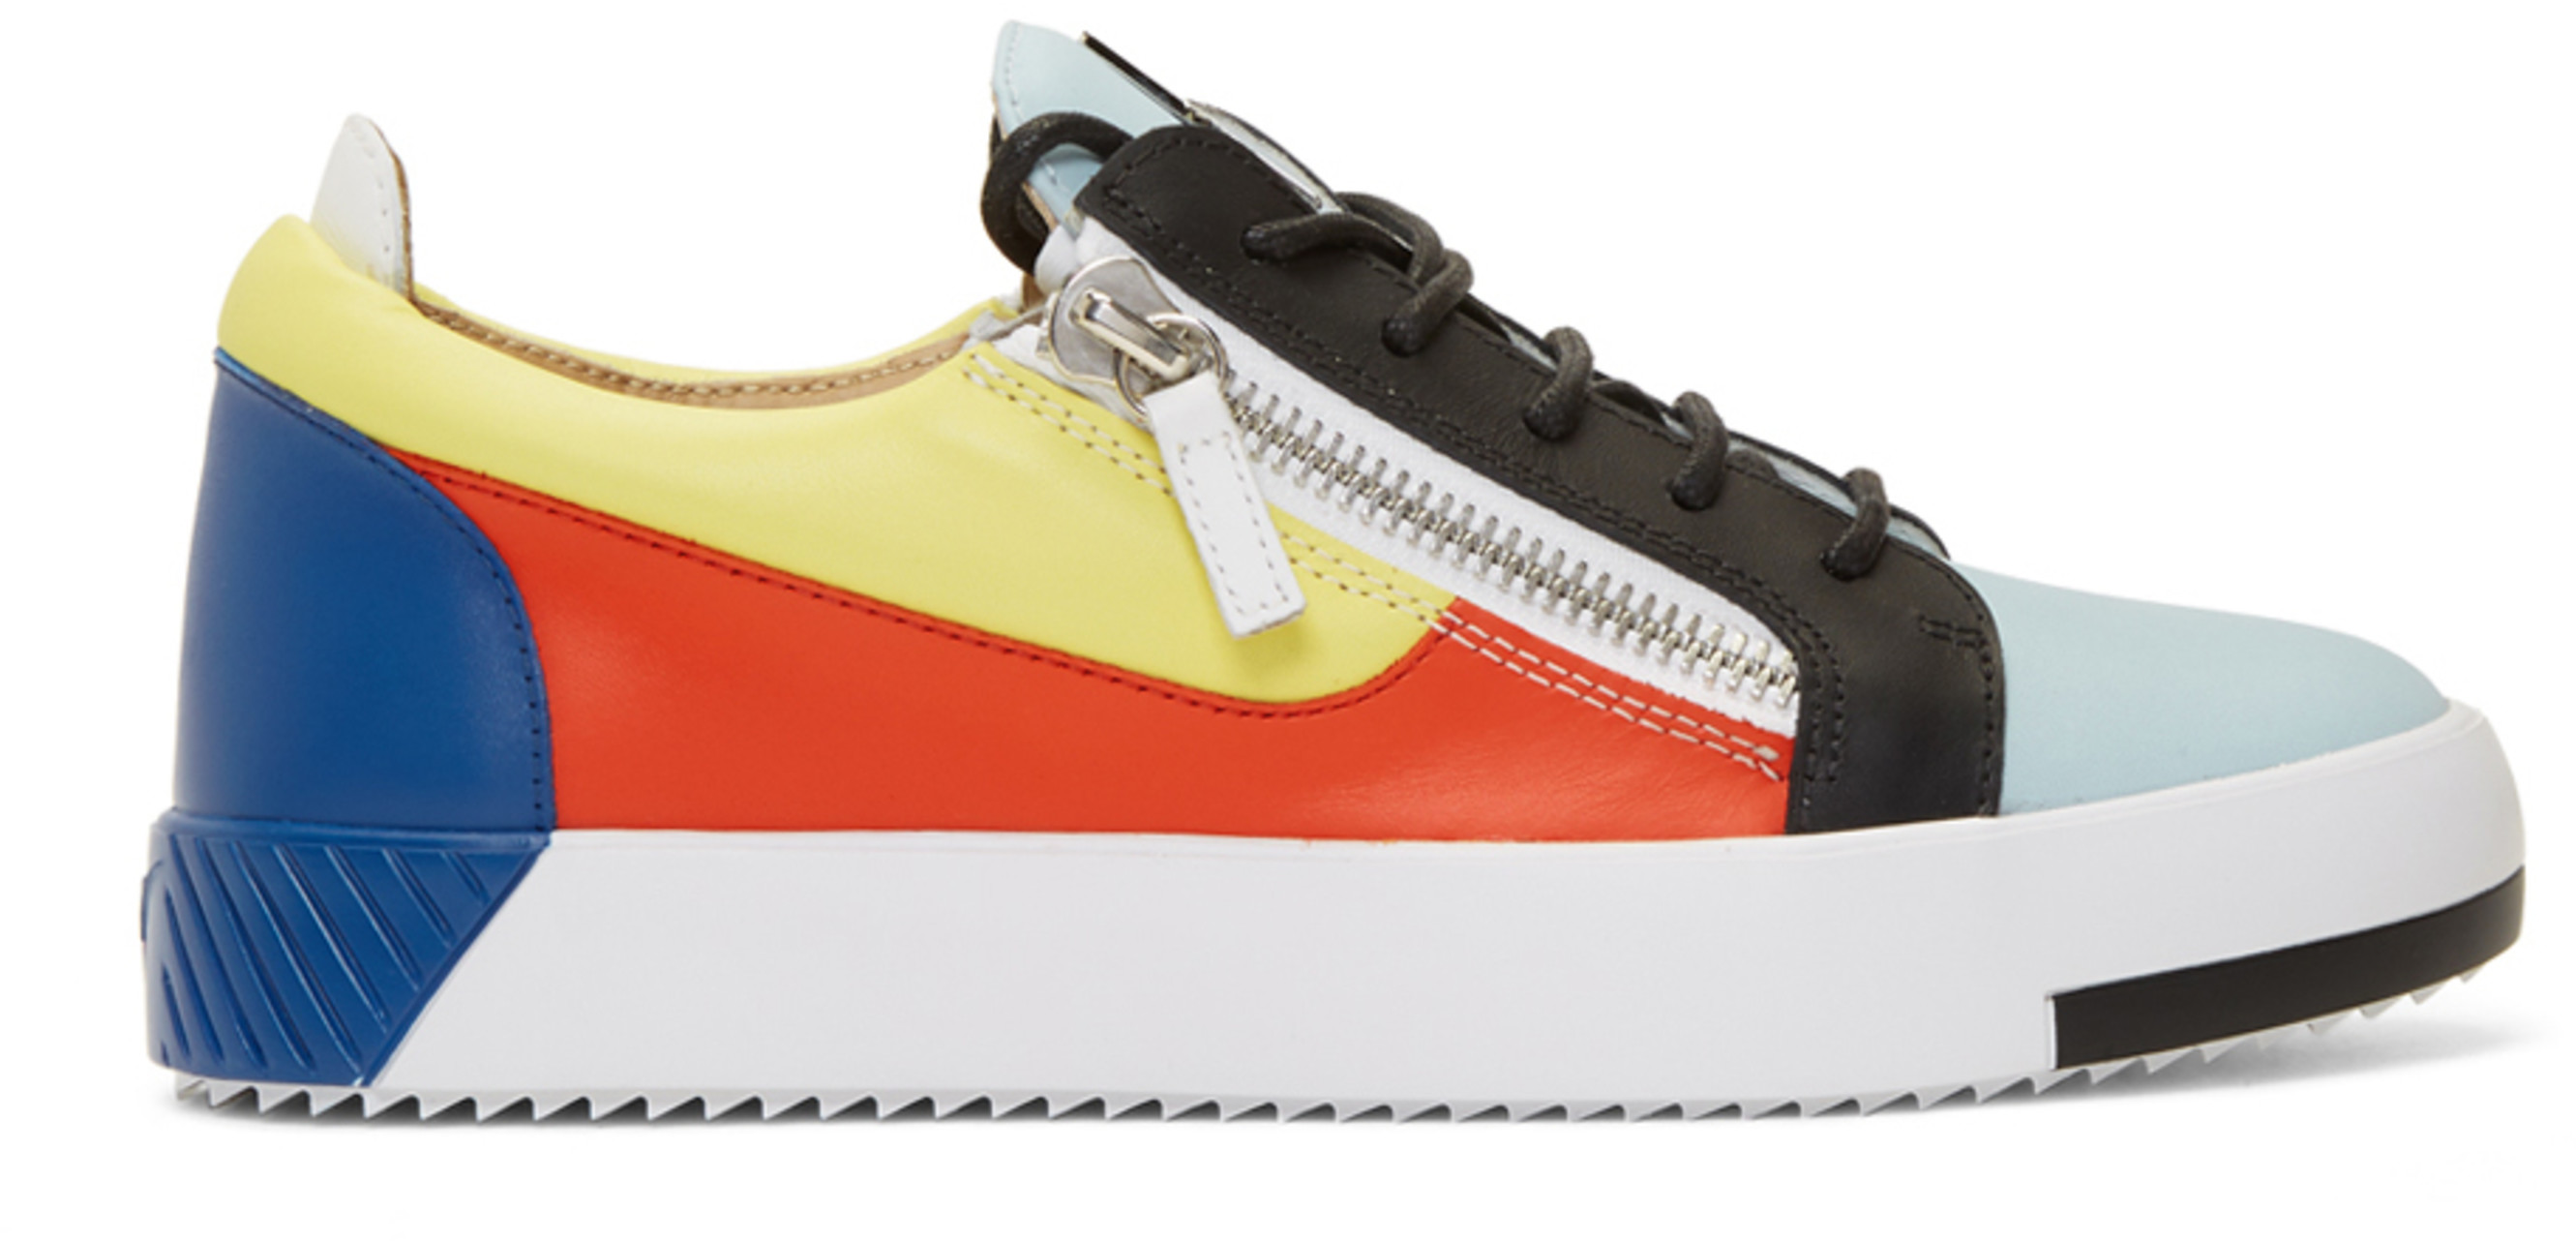 80f5d7ba4fff2 Giuseppe Zanotti for Men SS19 Collection